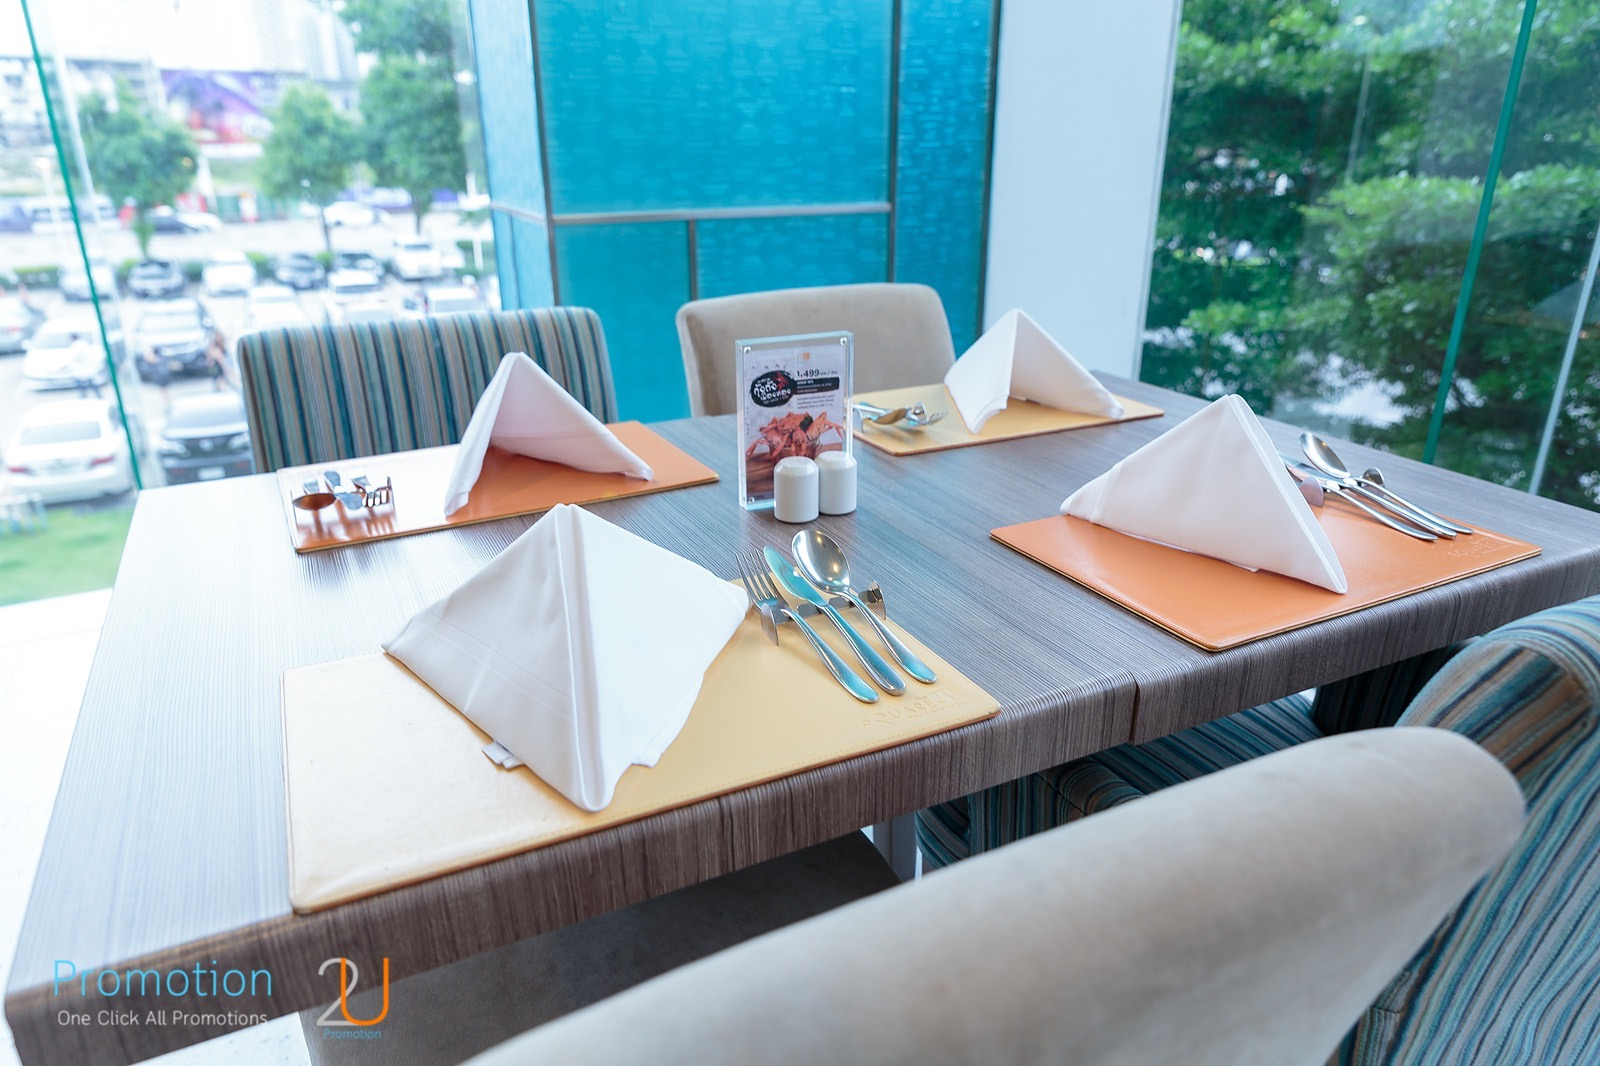 Review promotion muangthong koongtung bufft at the suare novotel impact P155